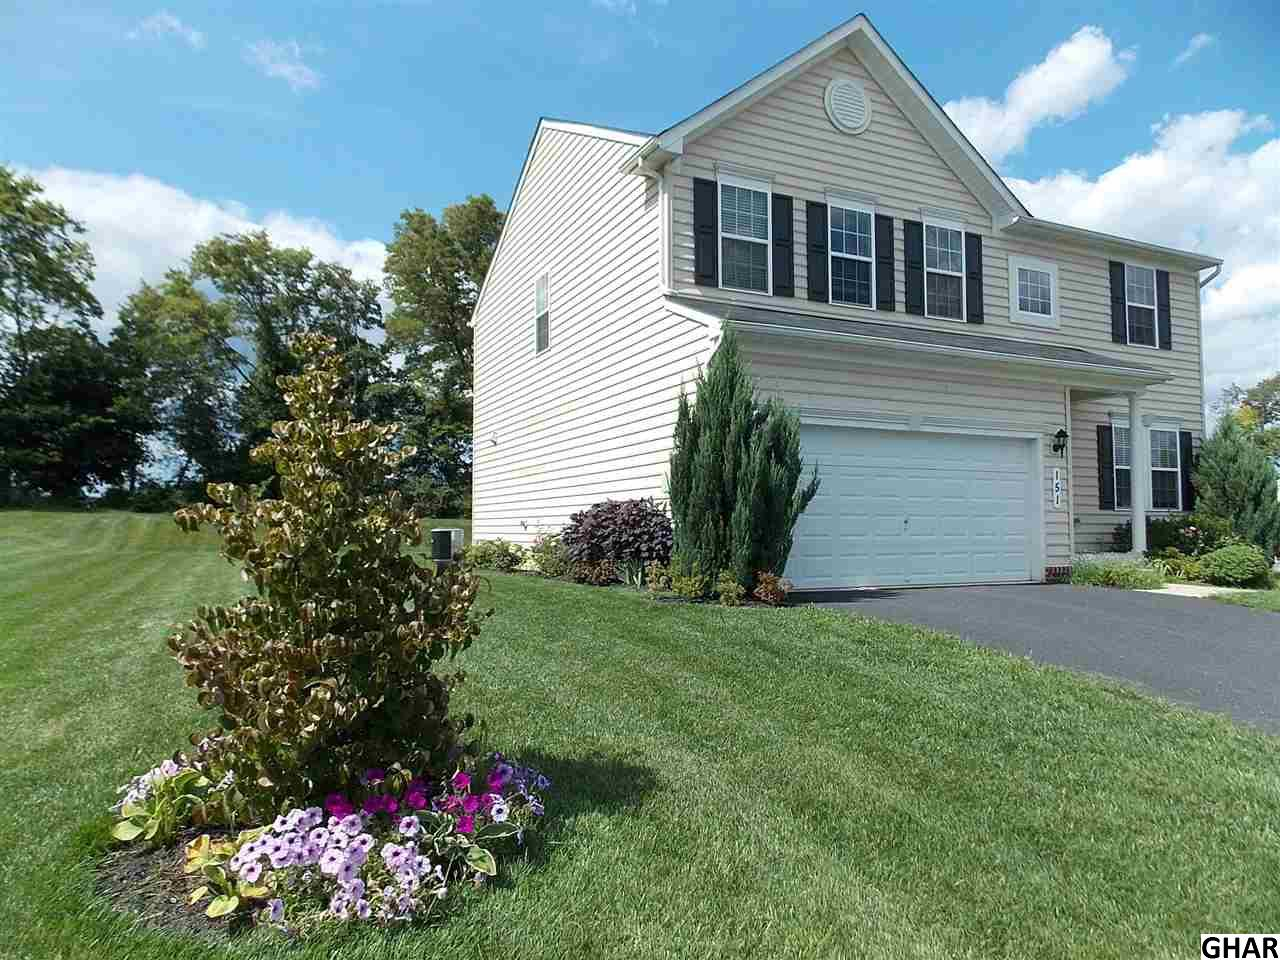 Rental Homes for Rent, ListingId:33764129, location: 151 Warm Sunday Way Mechanicsburg 17050